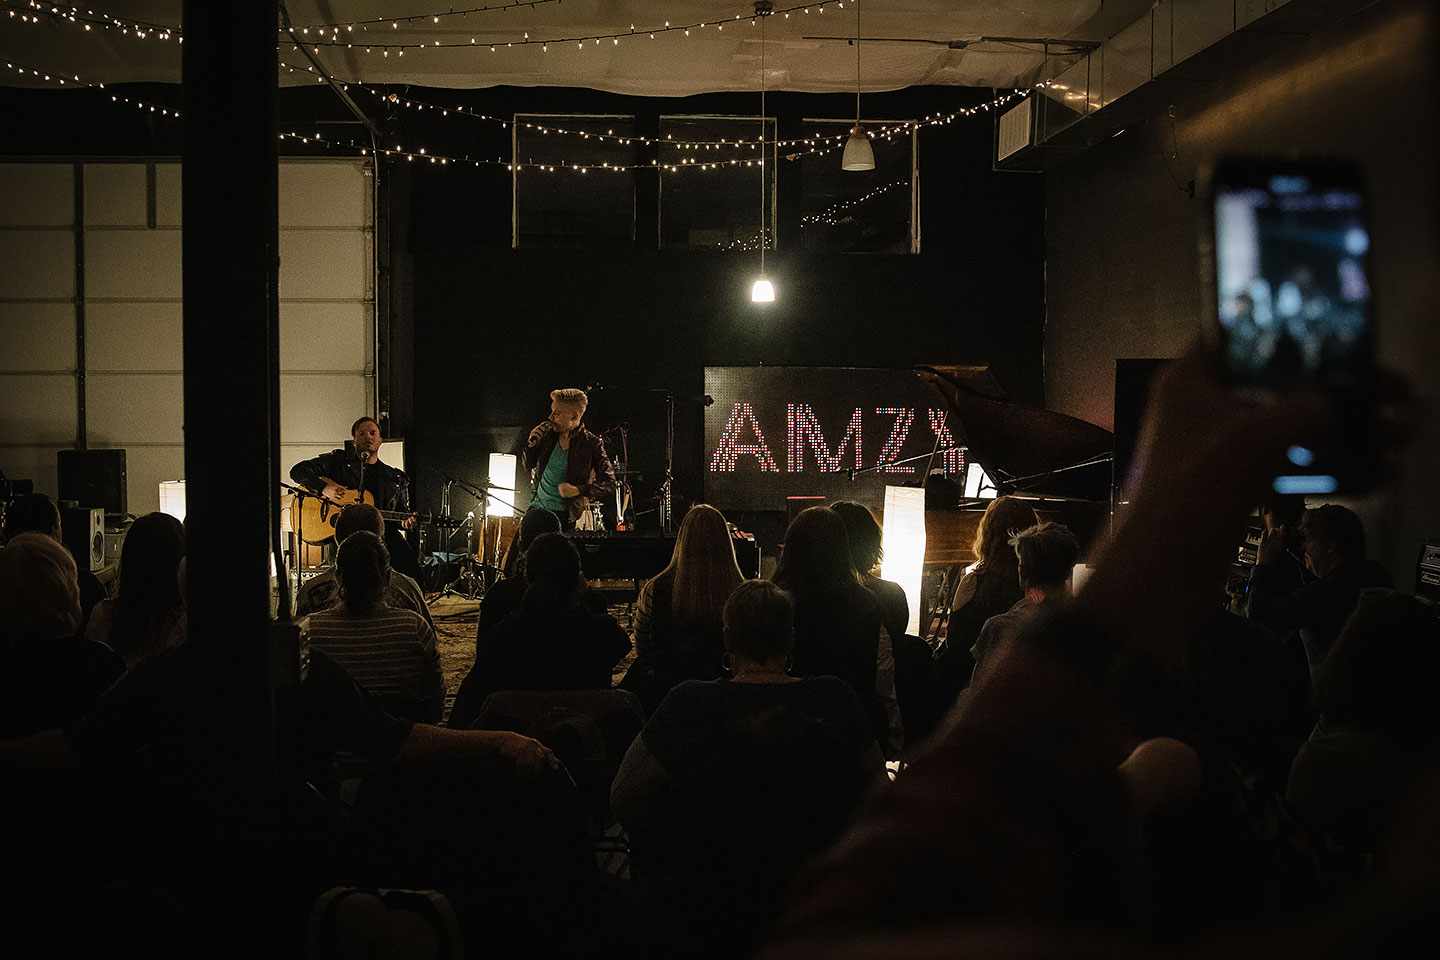 Denver Band AMZY - Acoustic Concert Photos